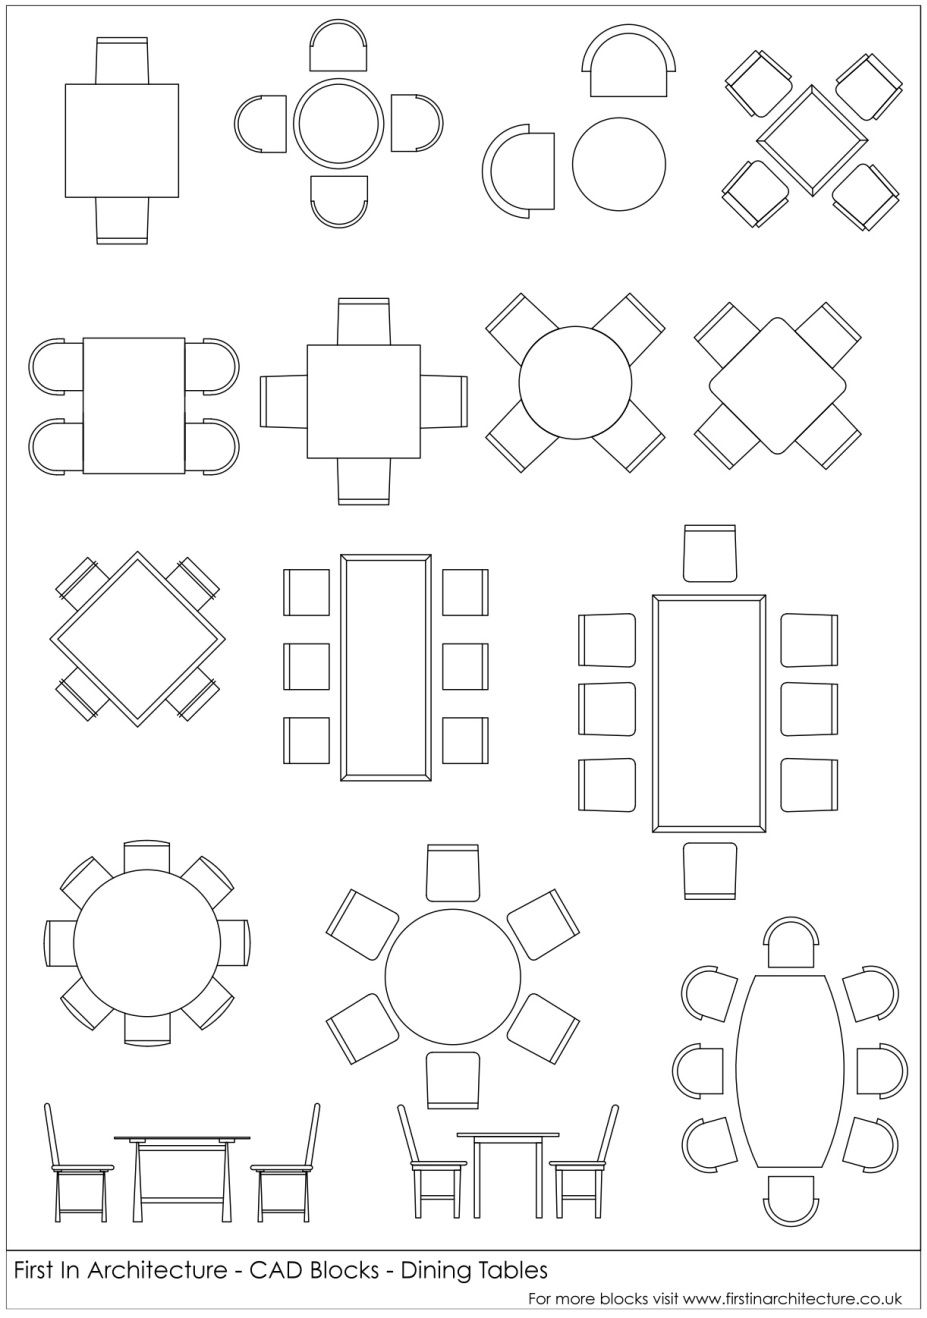 FIA CAD Blocks Dining Tables | architectural drawings | Pinterest ...